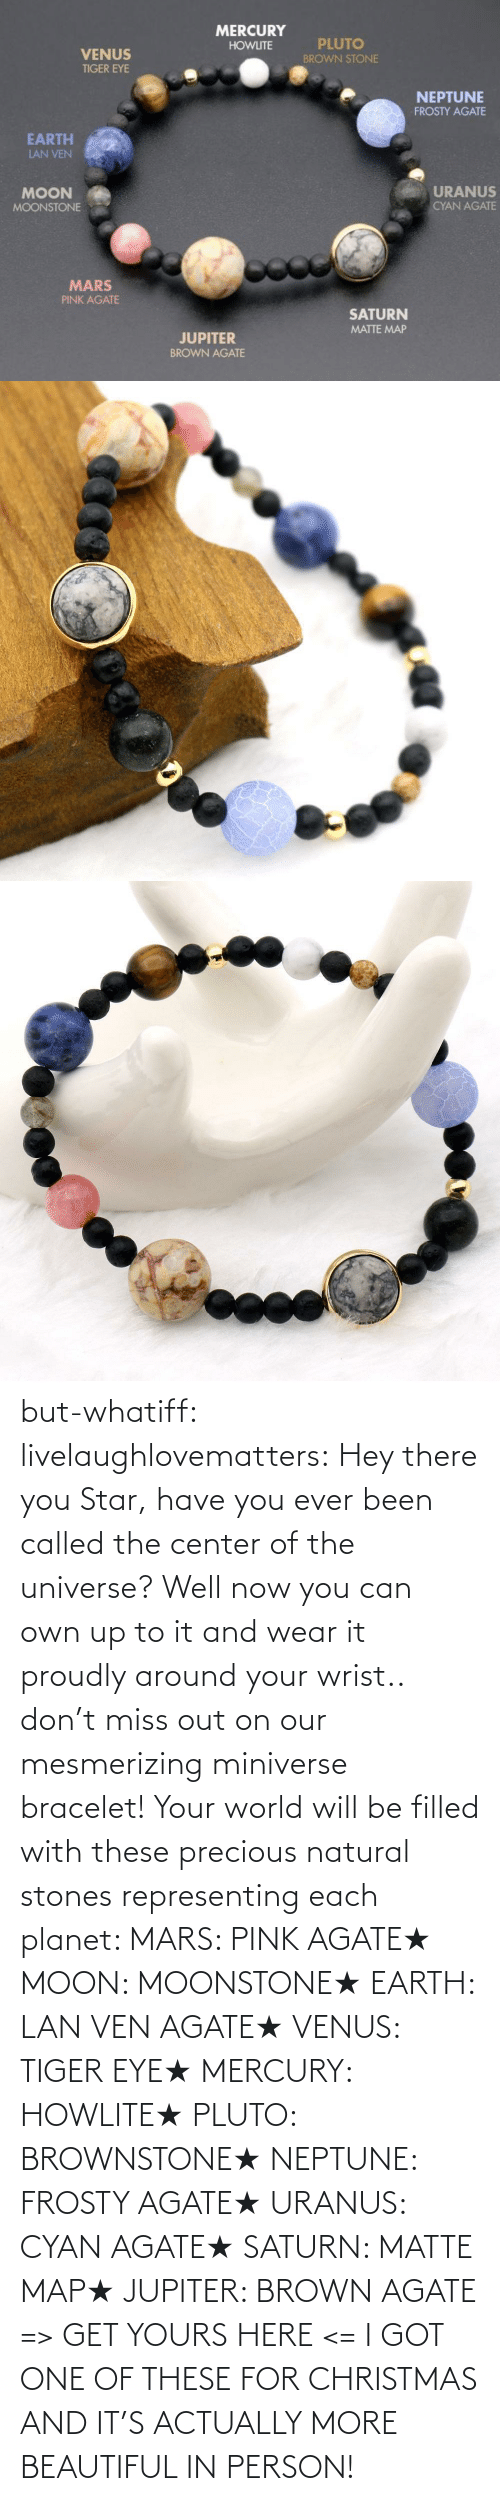 map: but-whatiff:  livelaughlovematters:  Hey there you Star, have you ever been called the center of the universe? Well now you can own up to it and wear it proudly around your wrist.. don't miss out on our mesmerizing miniverse bracelet! Your world will be filled with these precious natural stones representing each planet:  MARS: PINK AGATE★ MOON: MOONSTONE★ EARTH: LAN VEN AGATE★ VENUS: TIGER EYE★ MERCURY: HOWLITE★ PLUTO: BROWNSTONE★ NEPTUNE: FROSTY AGATE★ URANUS: CYAN AGATE★ SATURN: MATTE MAP★ JUPITER: BROWN AGATE => GET YOURS HERE <=  I GOT ONE OF THESE FOR CHRISTMAS AND IT'S ACTUALLY MORE BEAUTIFUL IN PERSON!